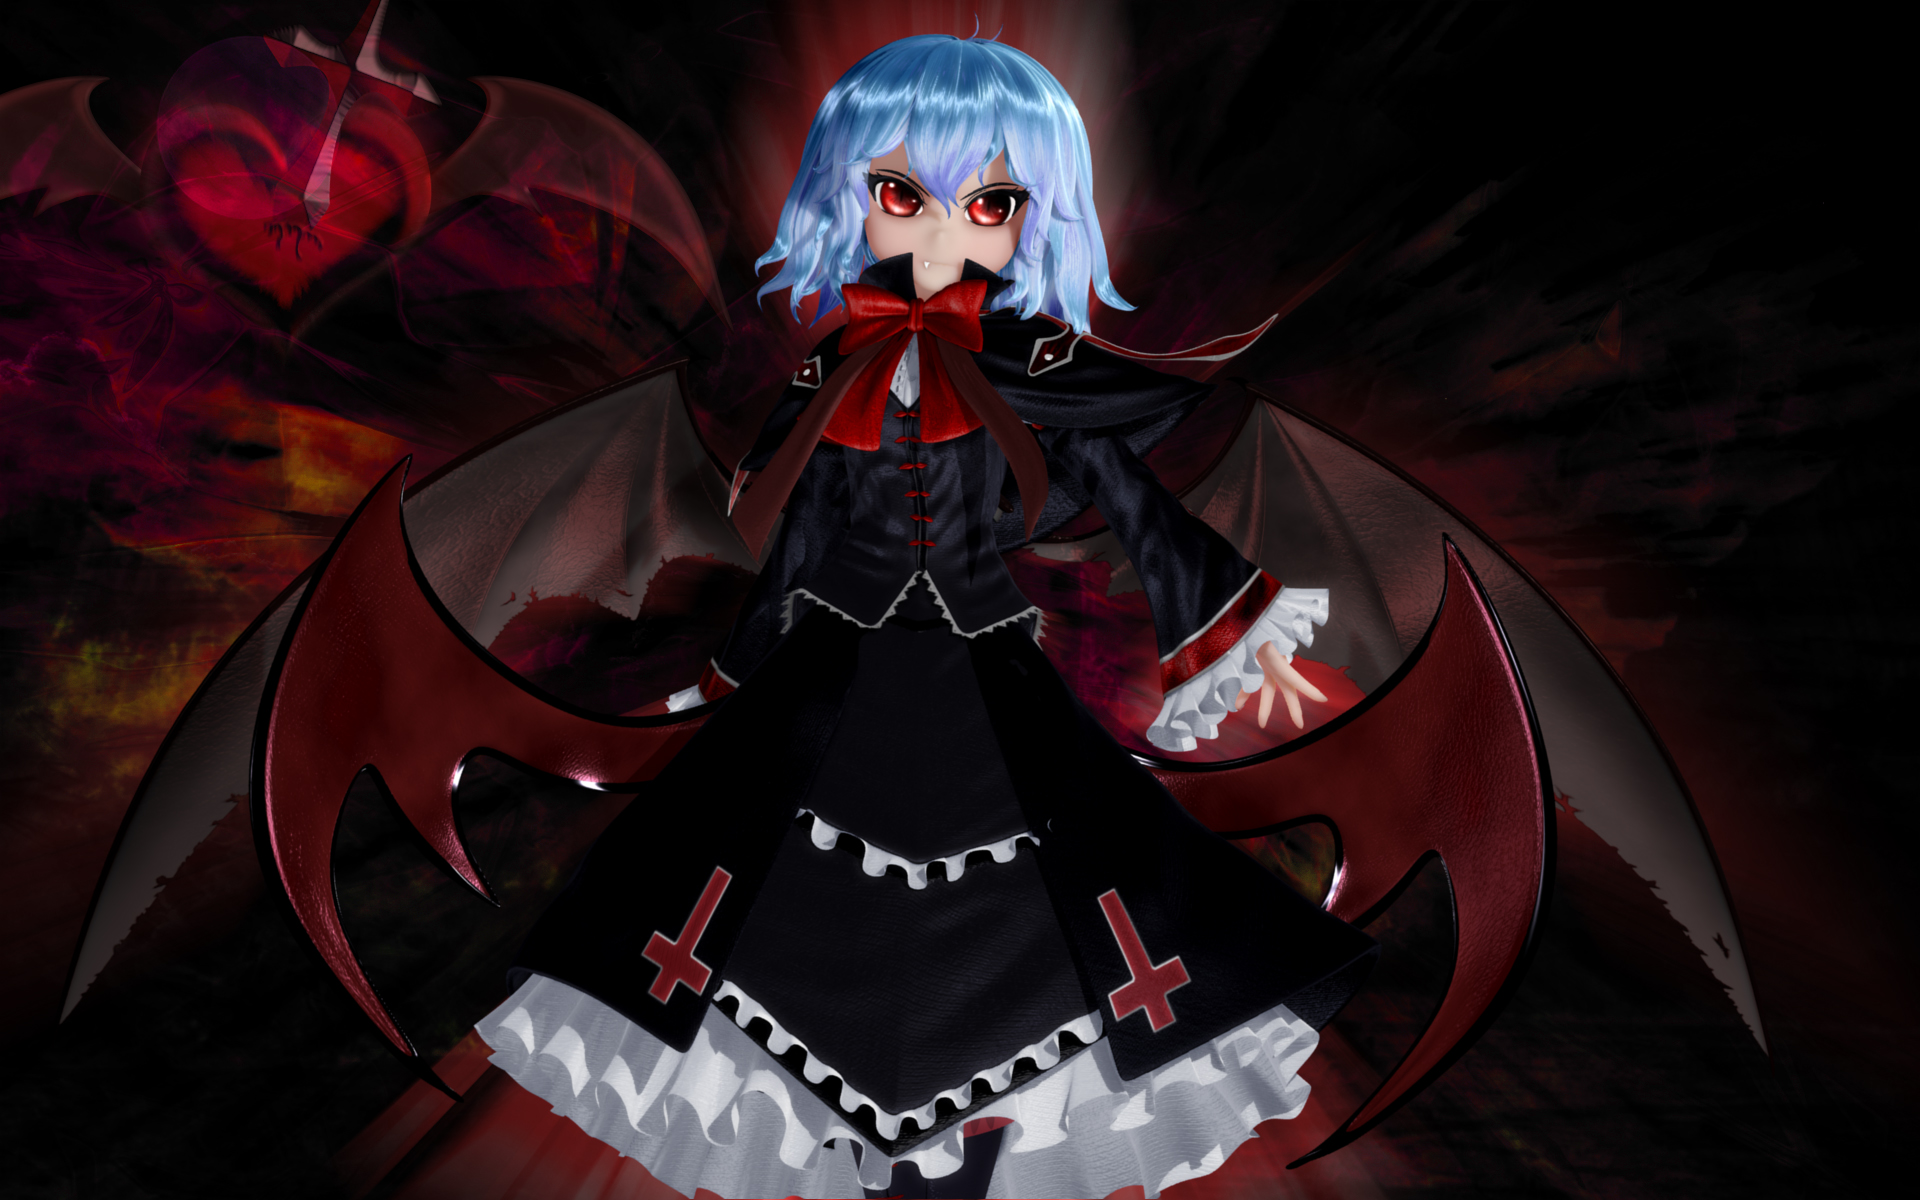 Remilia Alucard by Primantis